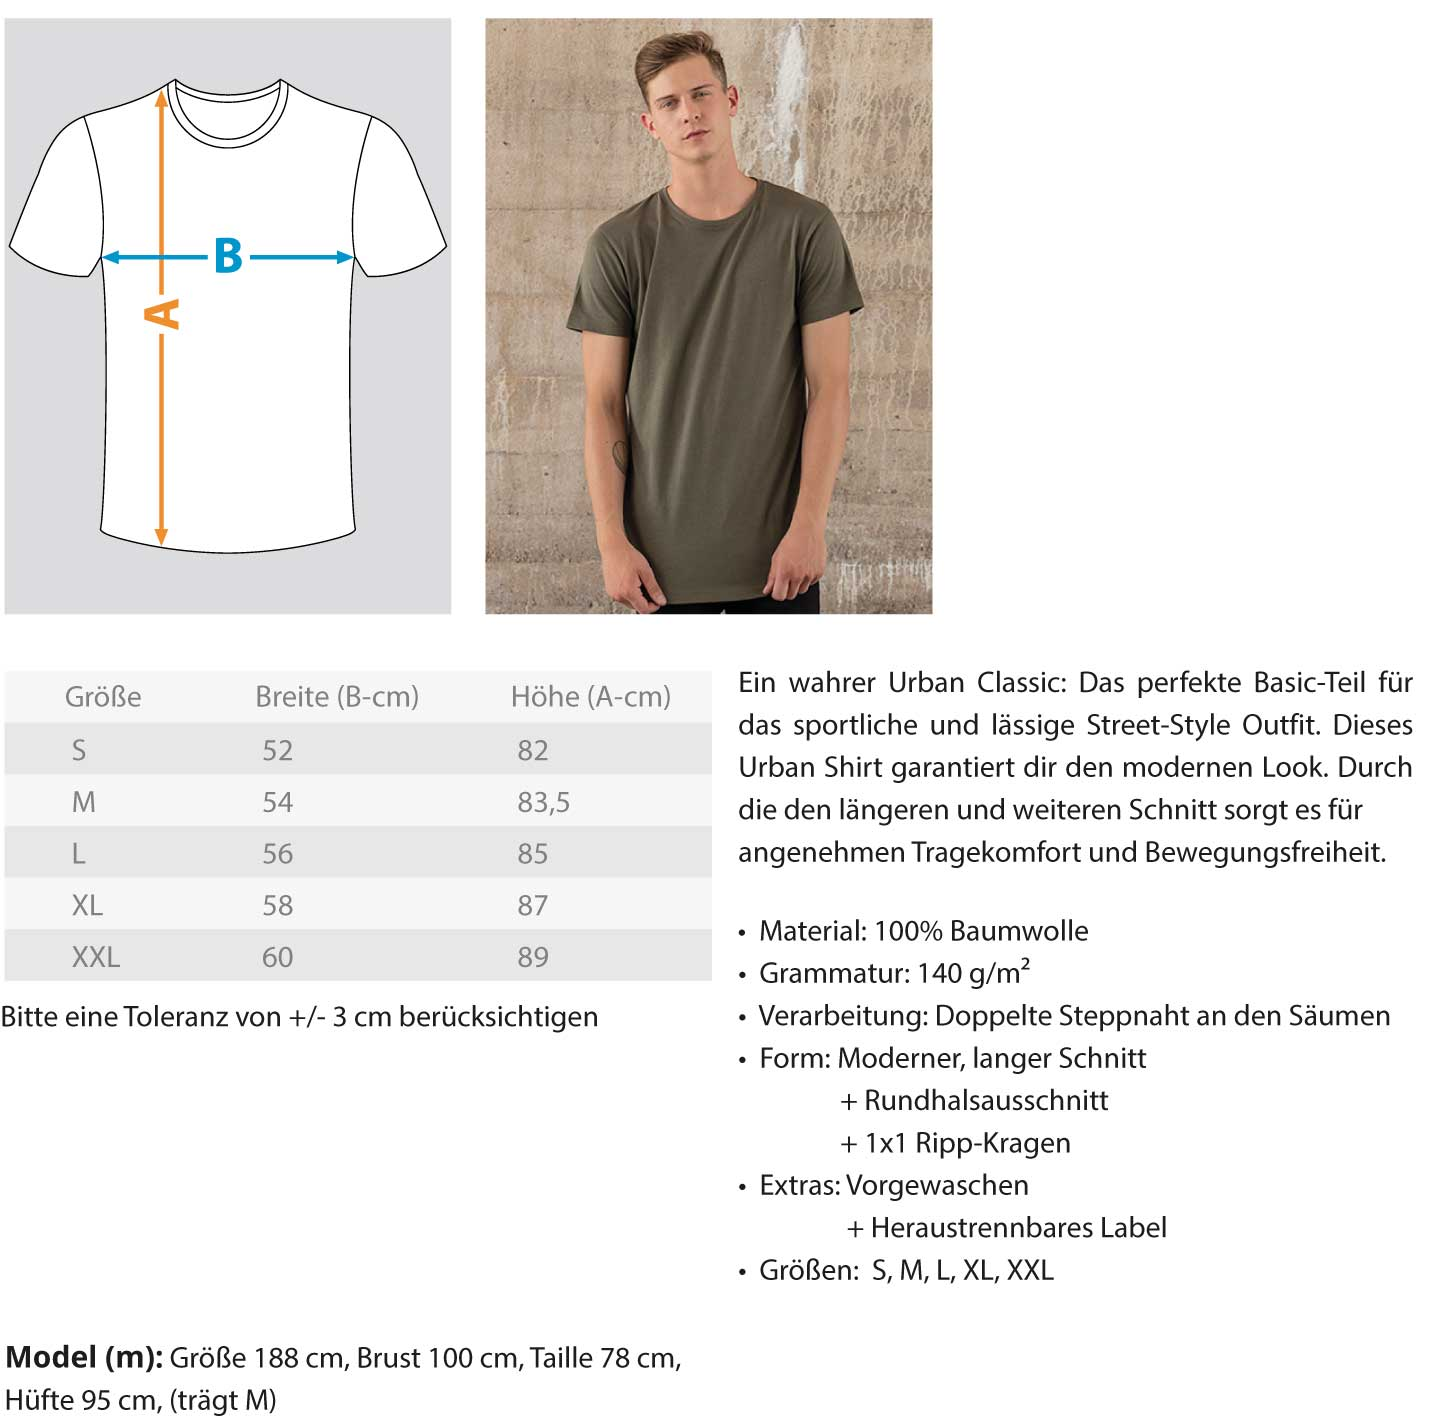 ZEUZ RAVE-ON! ®️ WHITE LONGTEE TSHIRT - Herren Long Tee Men Long Tee - Rave On!® der Club & Techno Szene Shop für Coole Junge Mode Streetwear Style & Fashion Outfits + Sexy Festival 420 Stuff